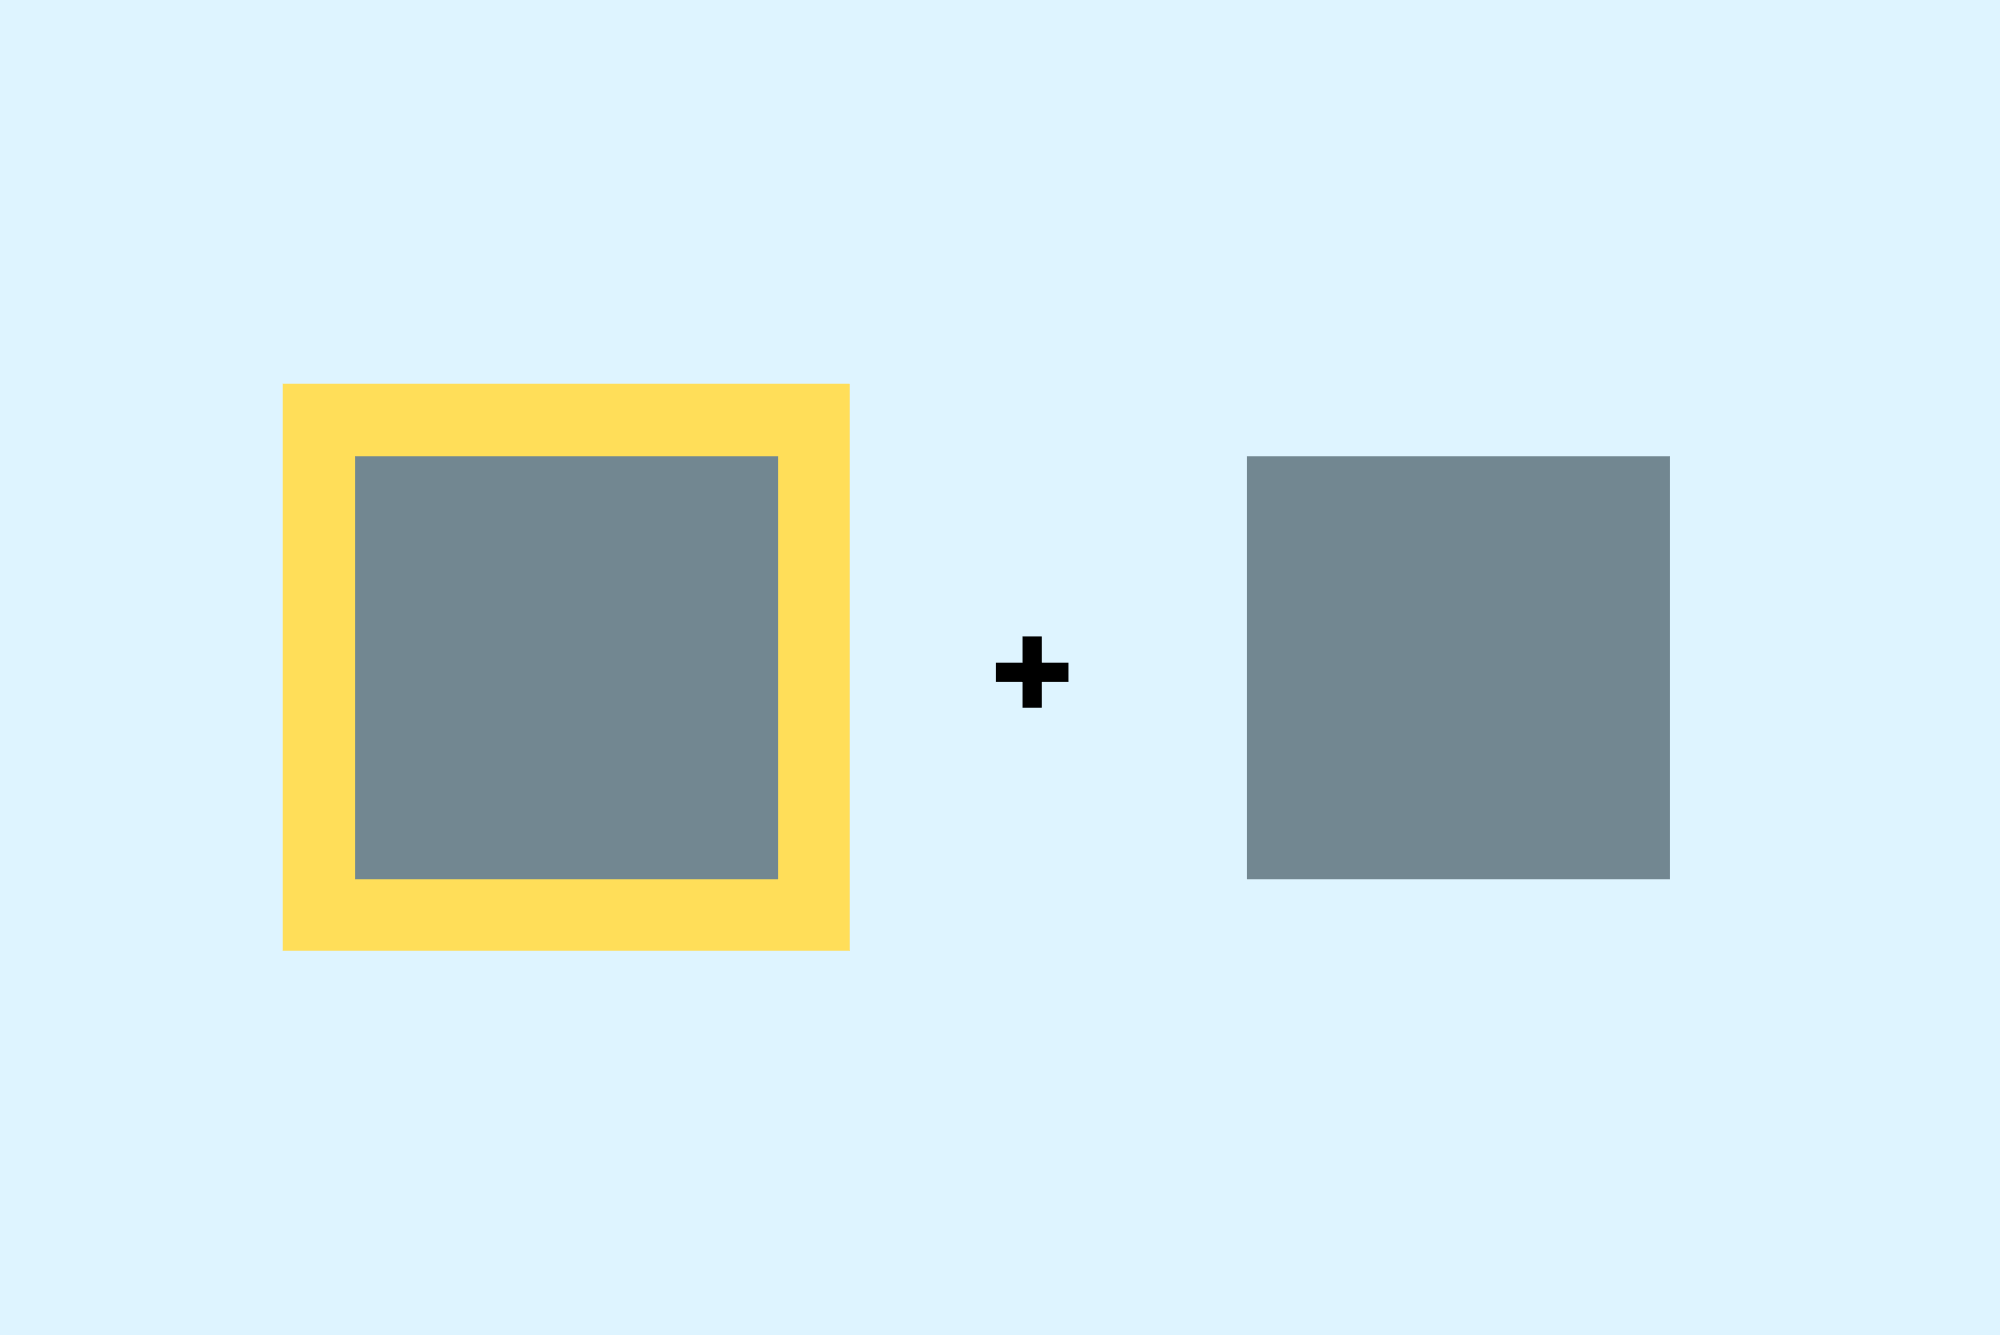 Illustration of a trial in the Posner cueing task showing to squares, one of which highlighted in yellow.